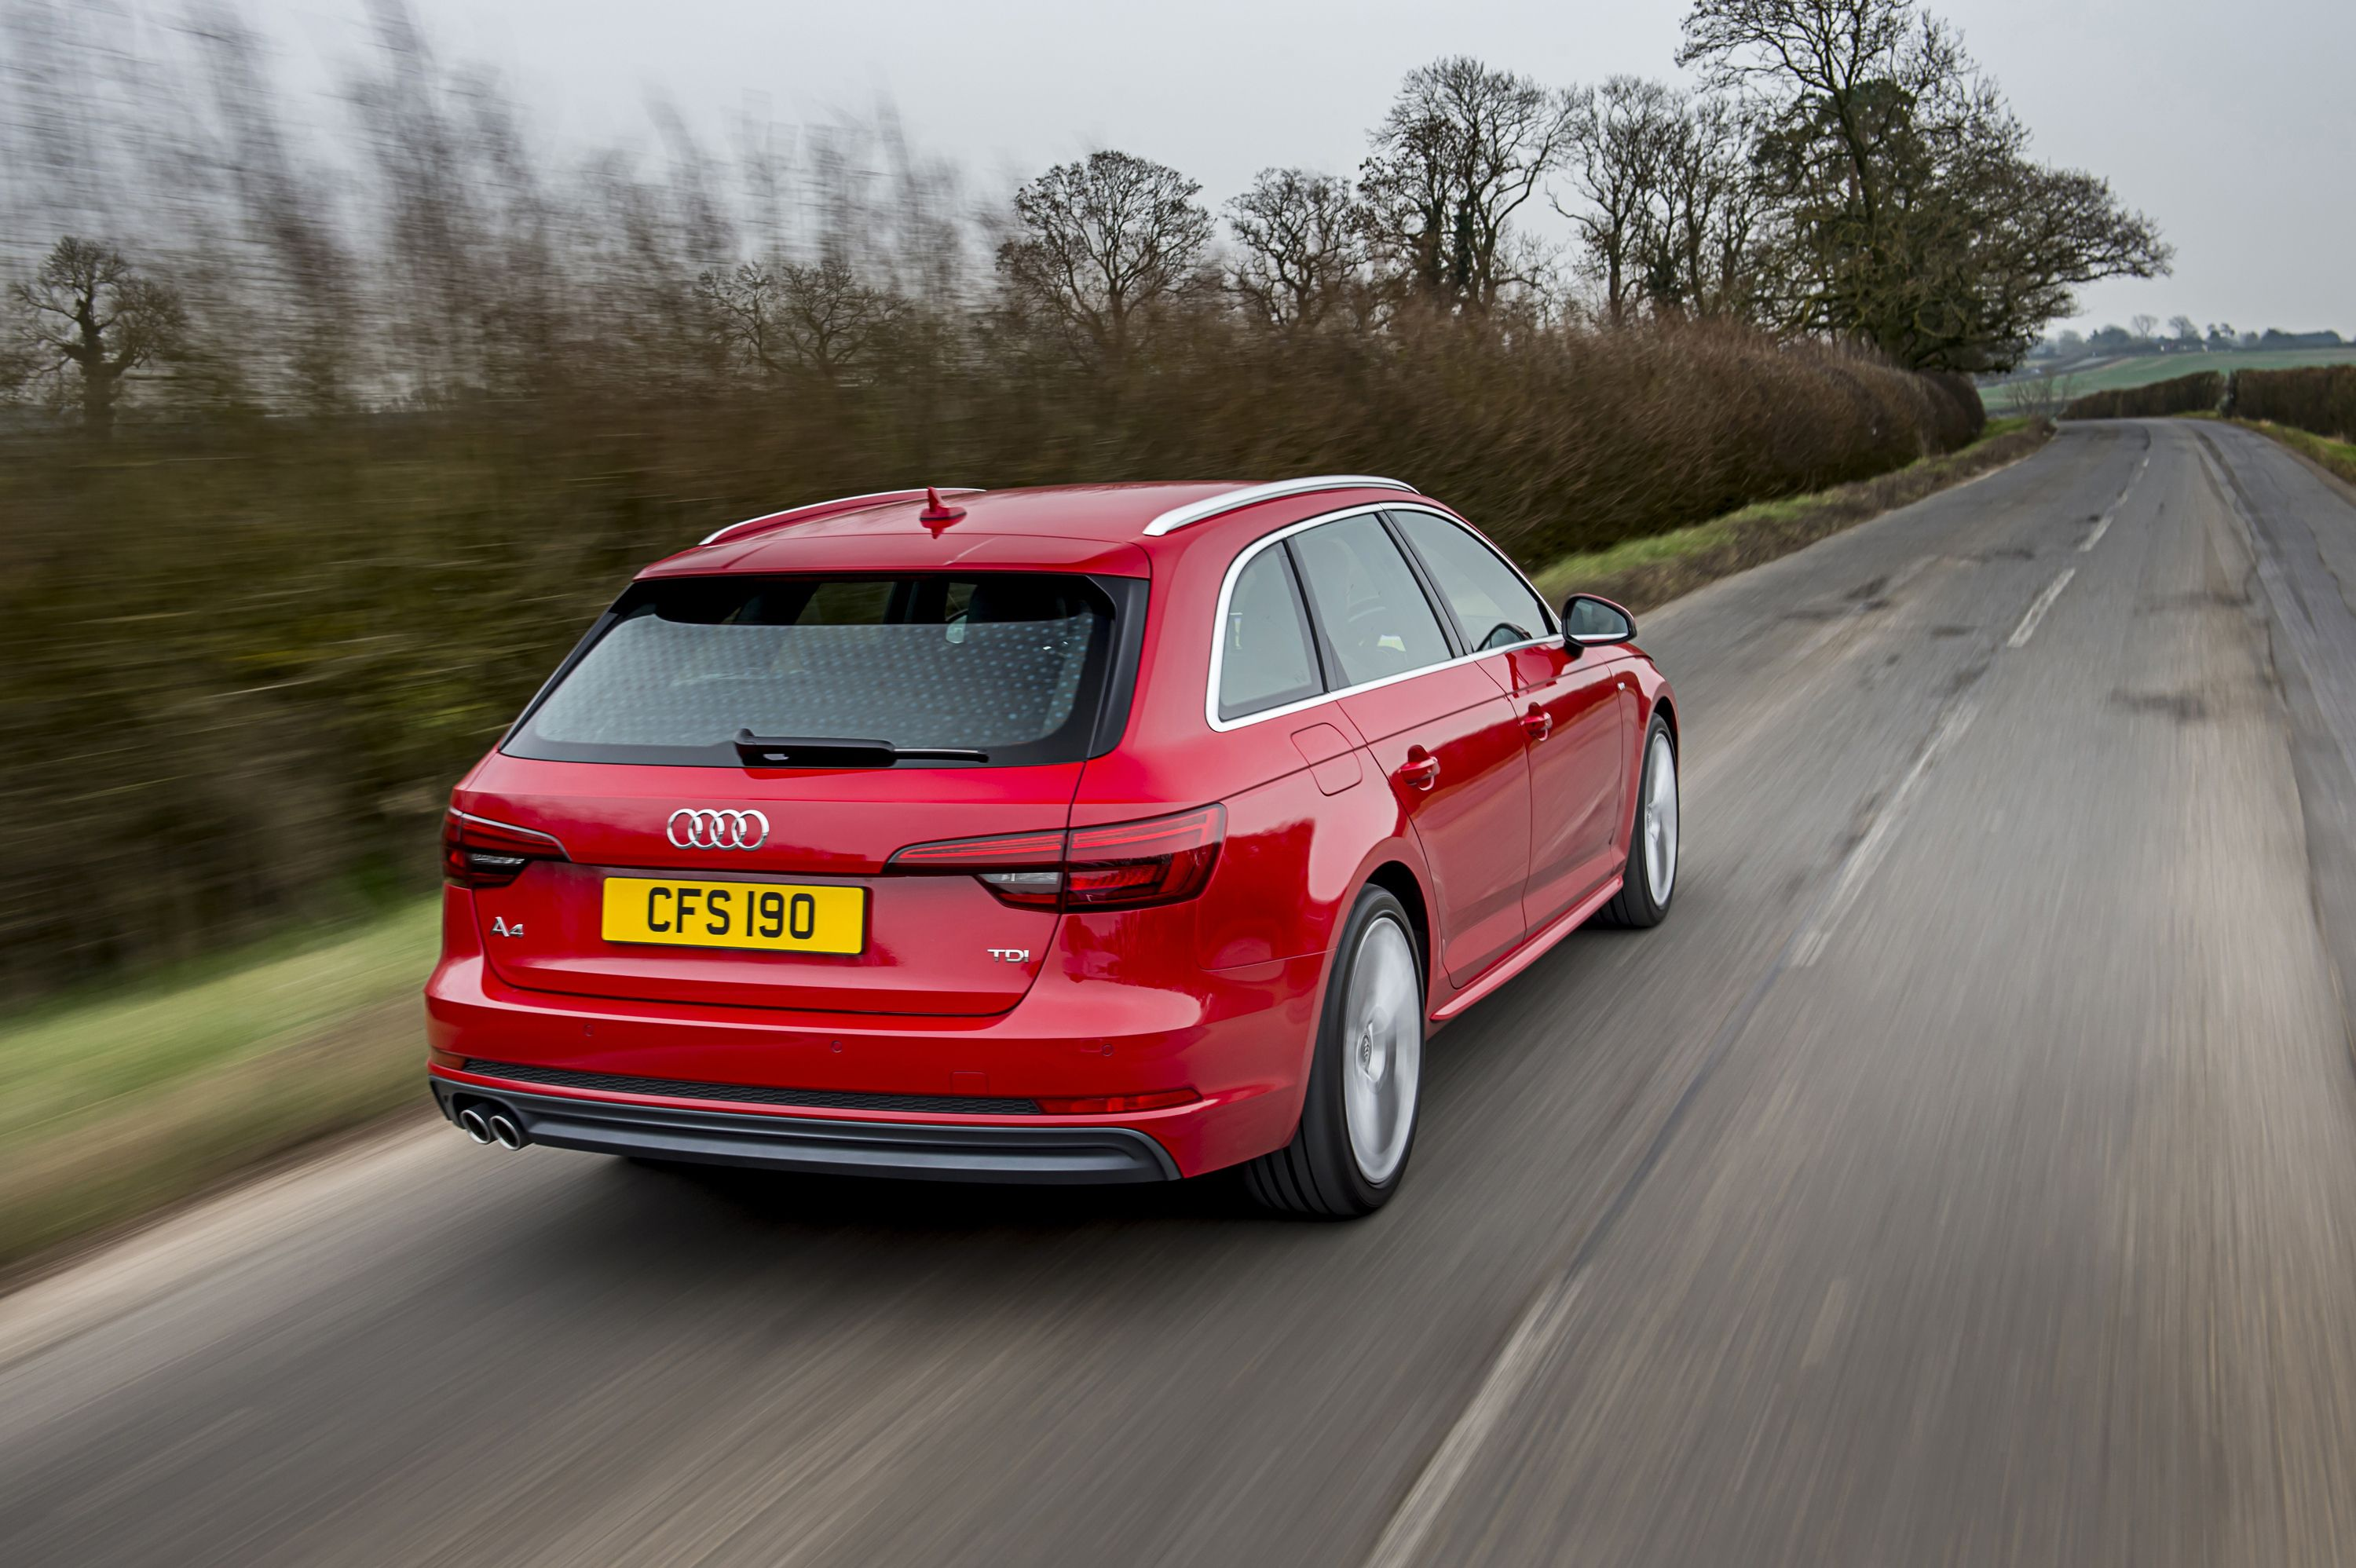 Audi A4 Avant estate car in red from back